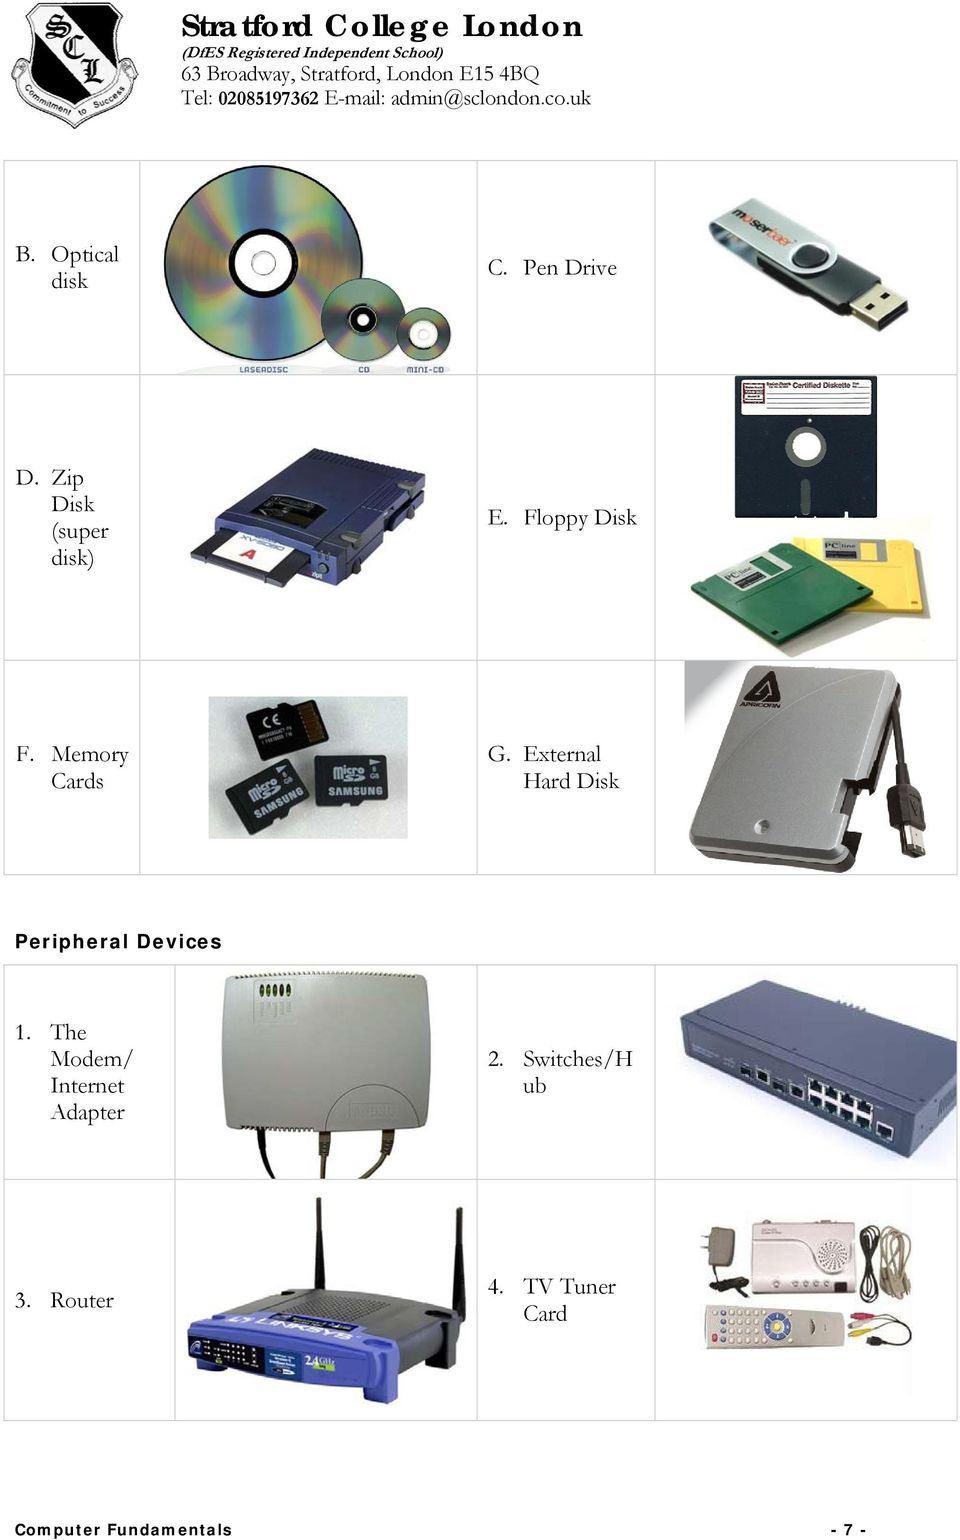 External Hard Disk Peripheral Devices 1.